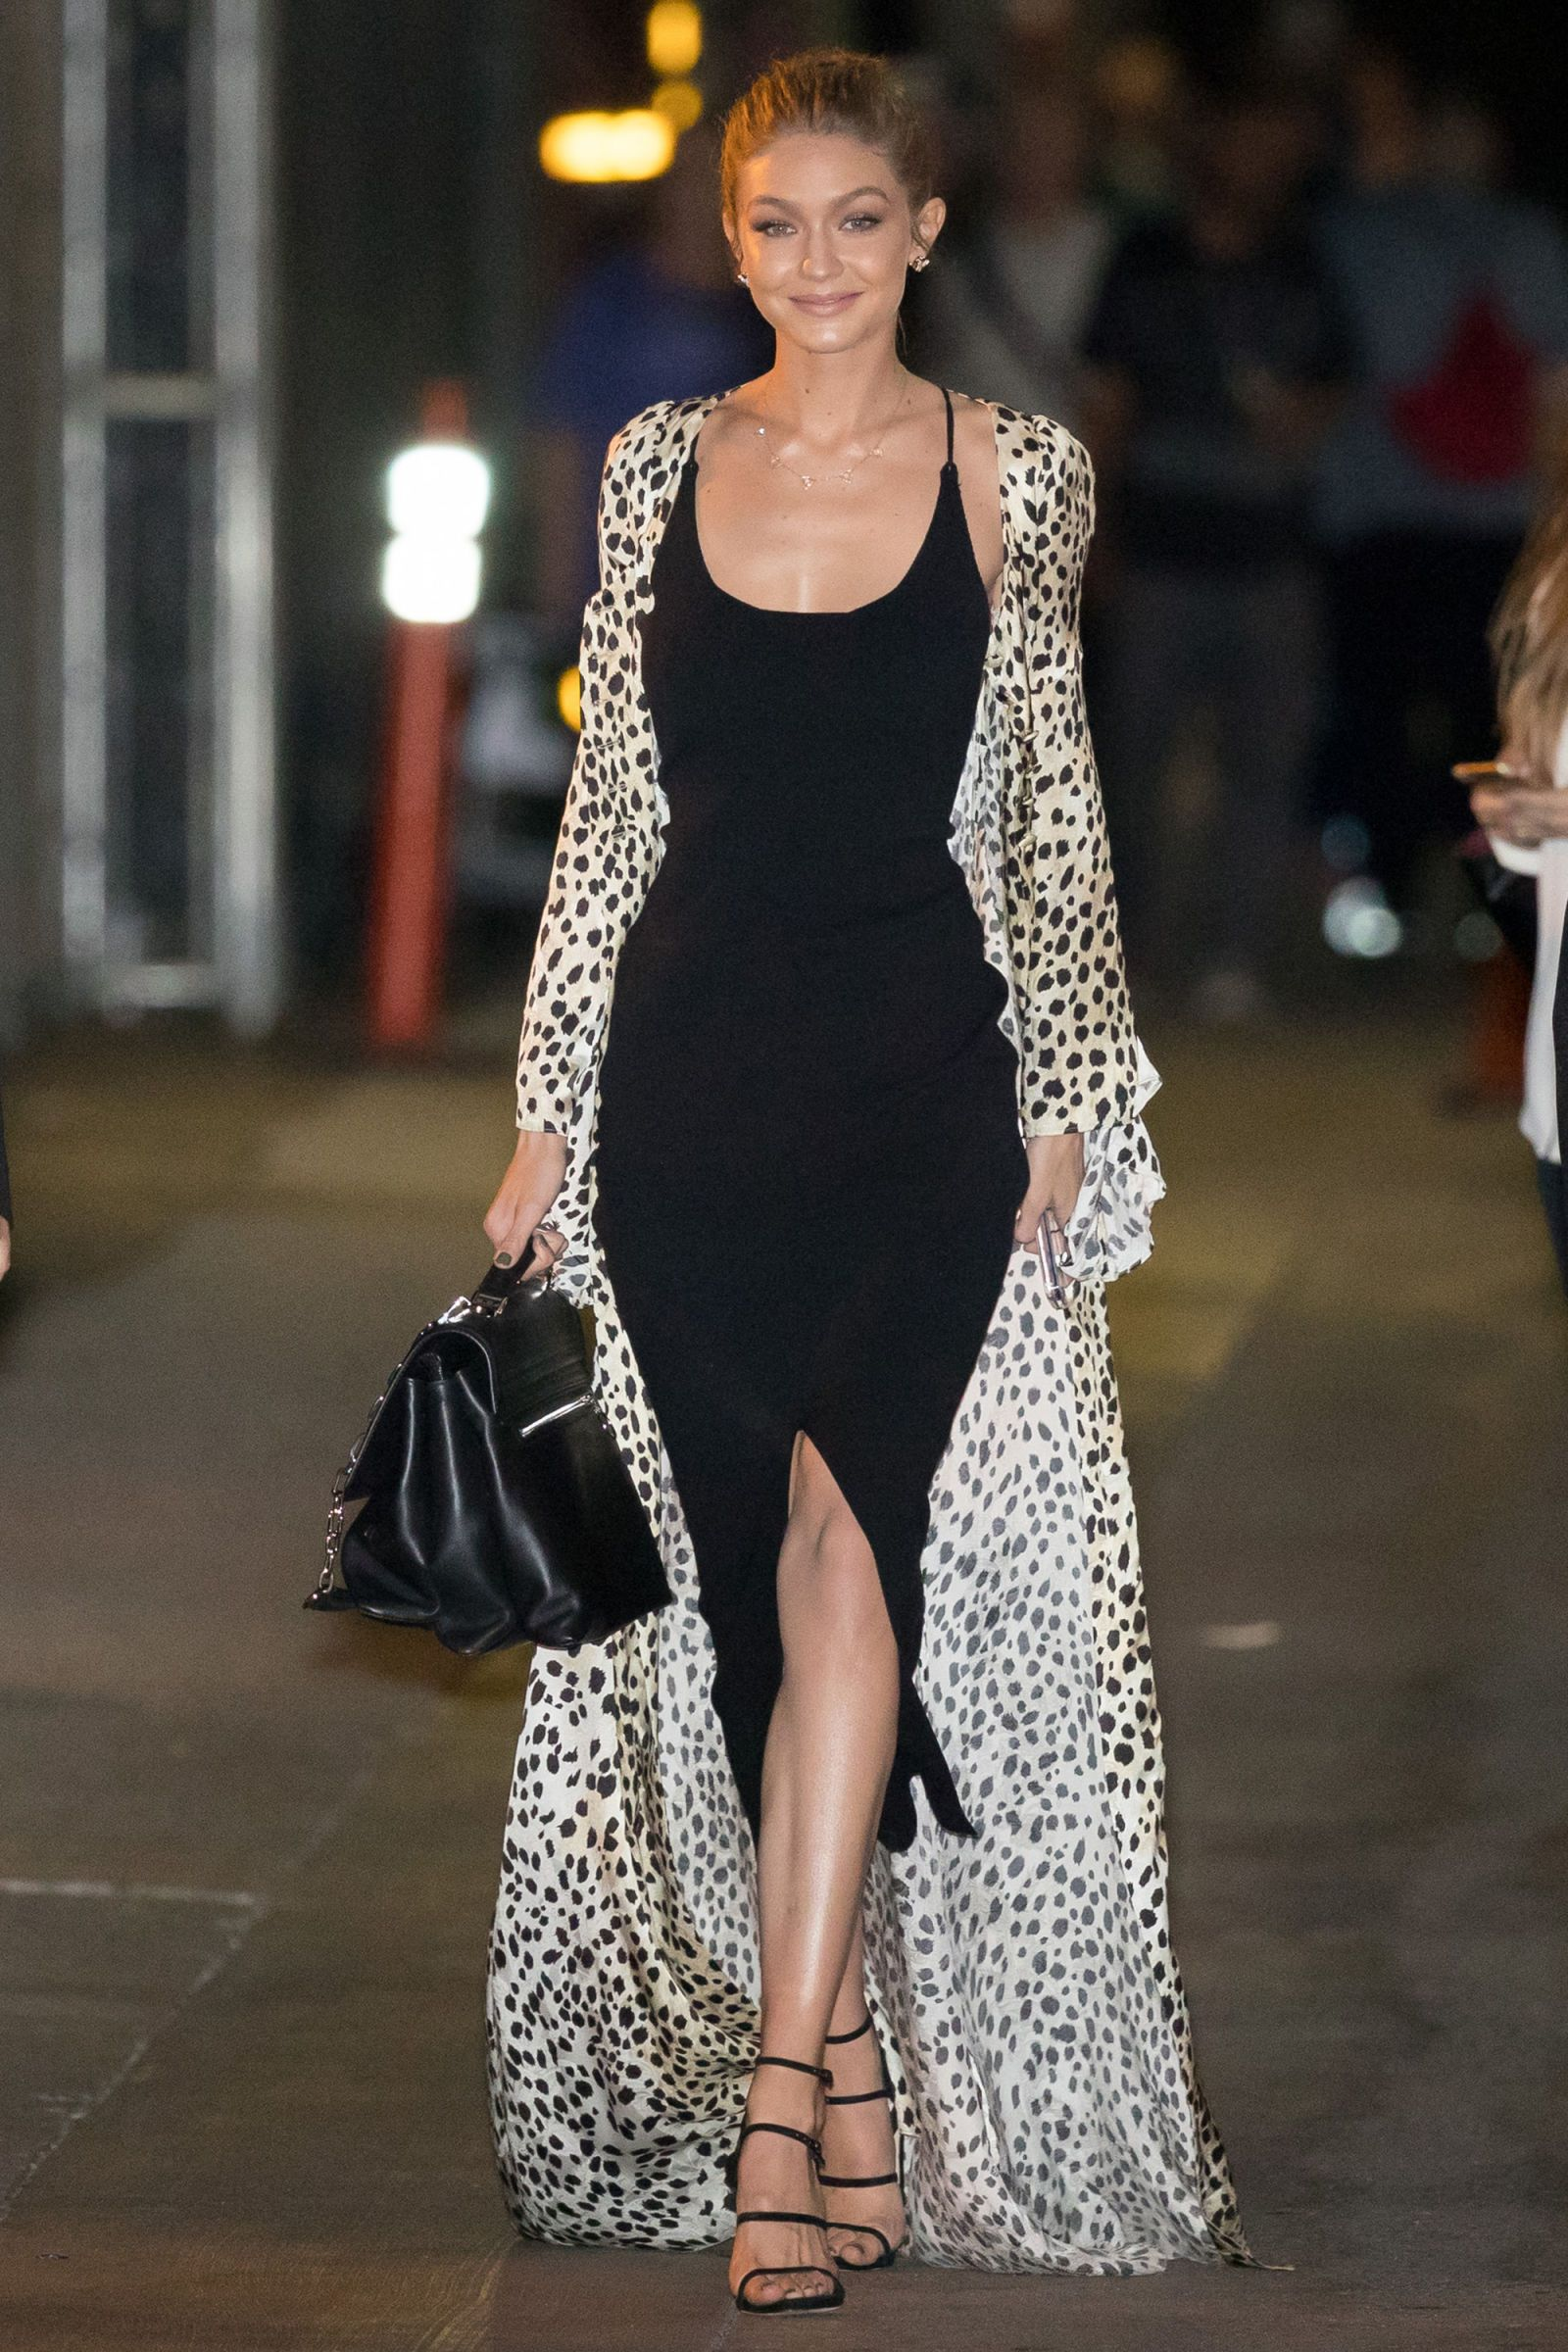 A style: in her week gigi hadid recommendations dress for autumn in 2019